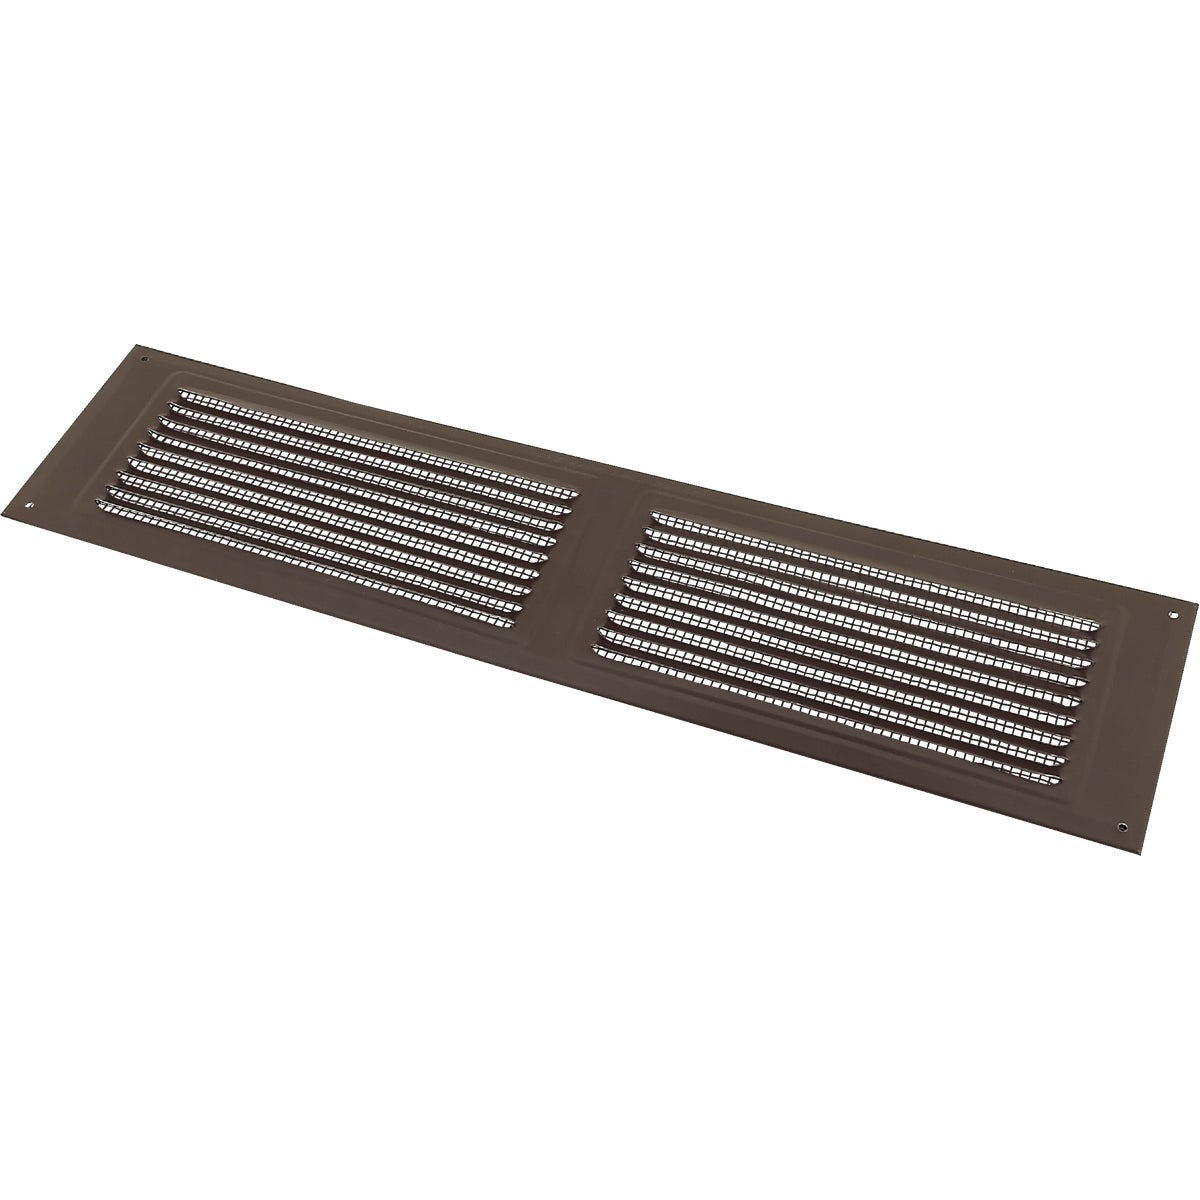 16X8 BRN SOFFIT VENT - 556148 by Noll/norwesco Llc